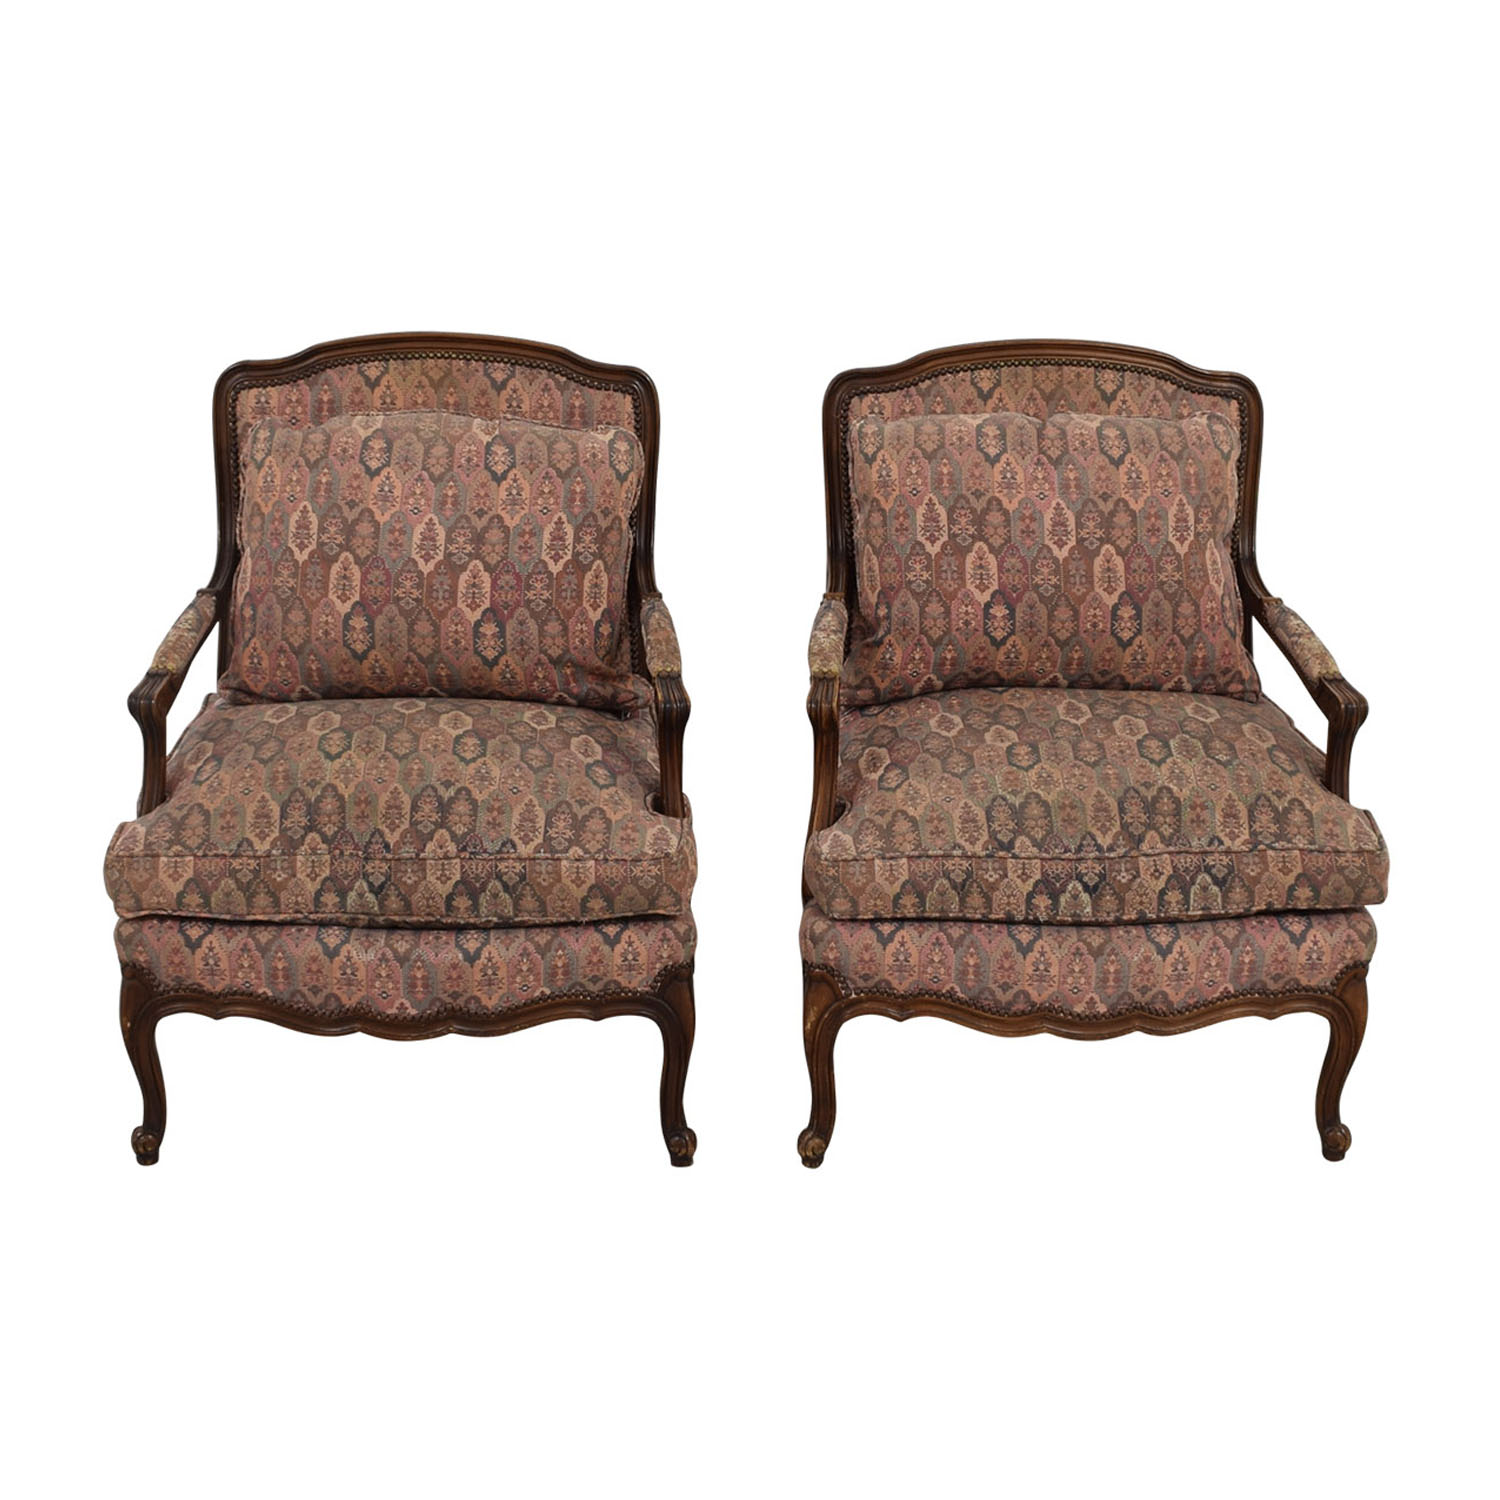 TRS Furniture TRS Furniture Low Wing Back Arm Chairs price